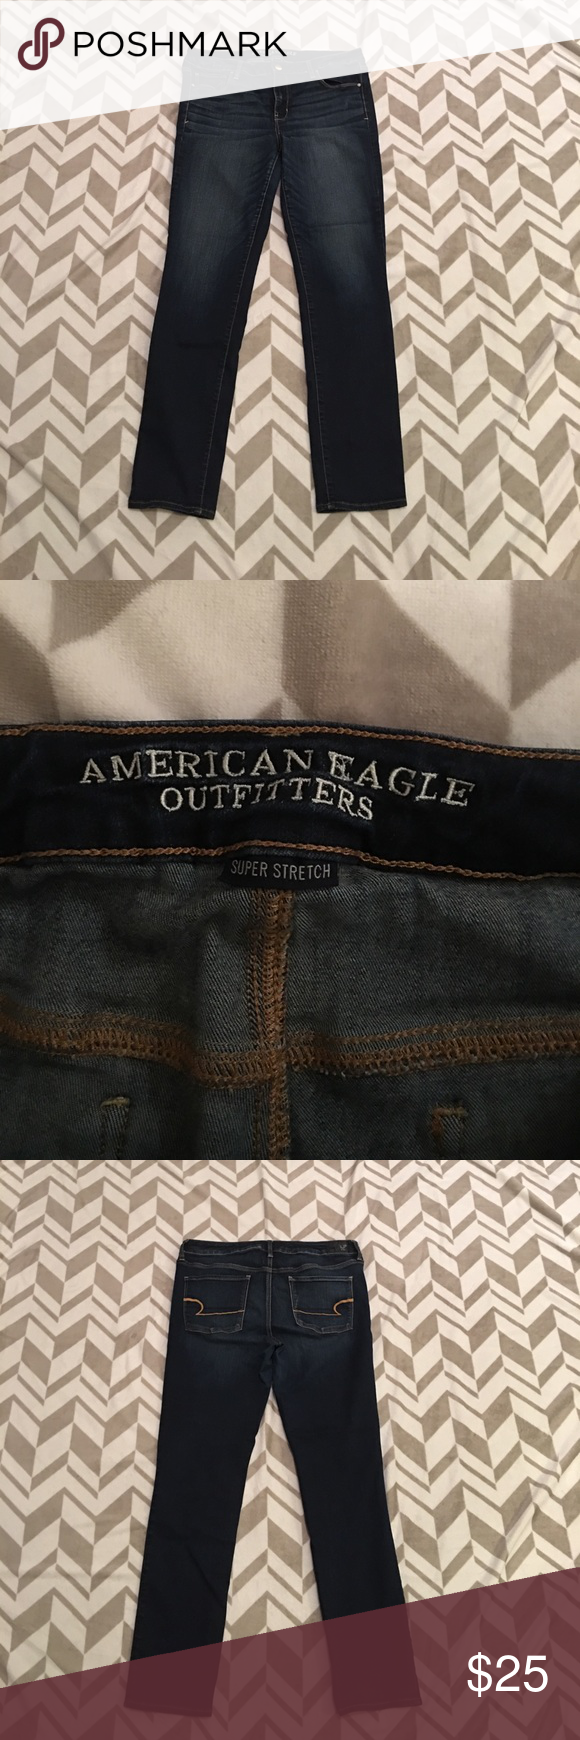 American Eagle Size 16 Long Skinny Jeans American Eagle Size 16 Long Skinny Fit. These were my favorite jeans, but they're too big now. They show no signs of wear. Stretchy and super comfy. American Eagle Outfitters Jeans Skinny